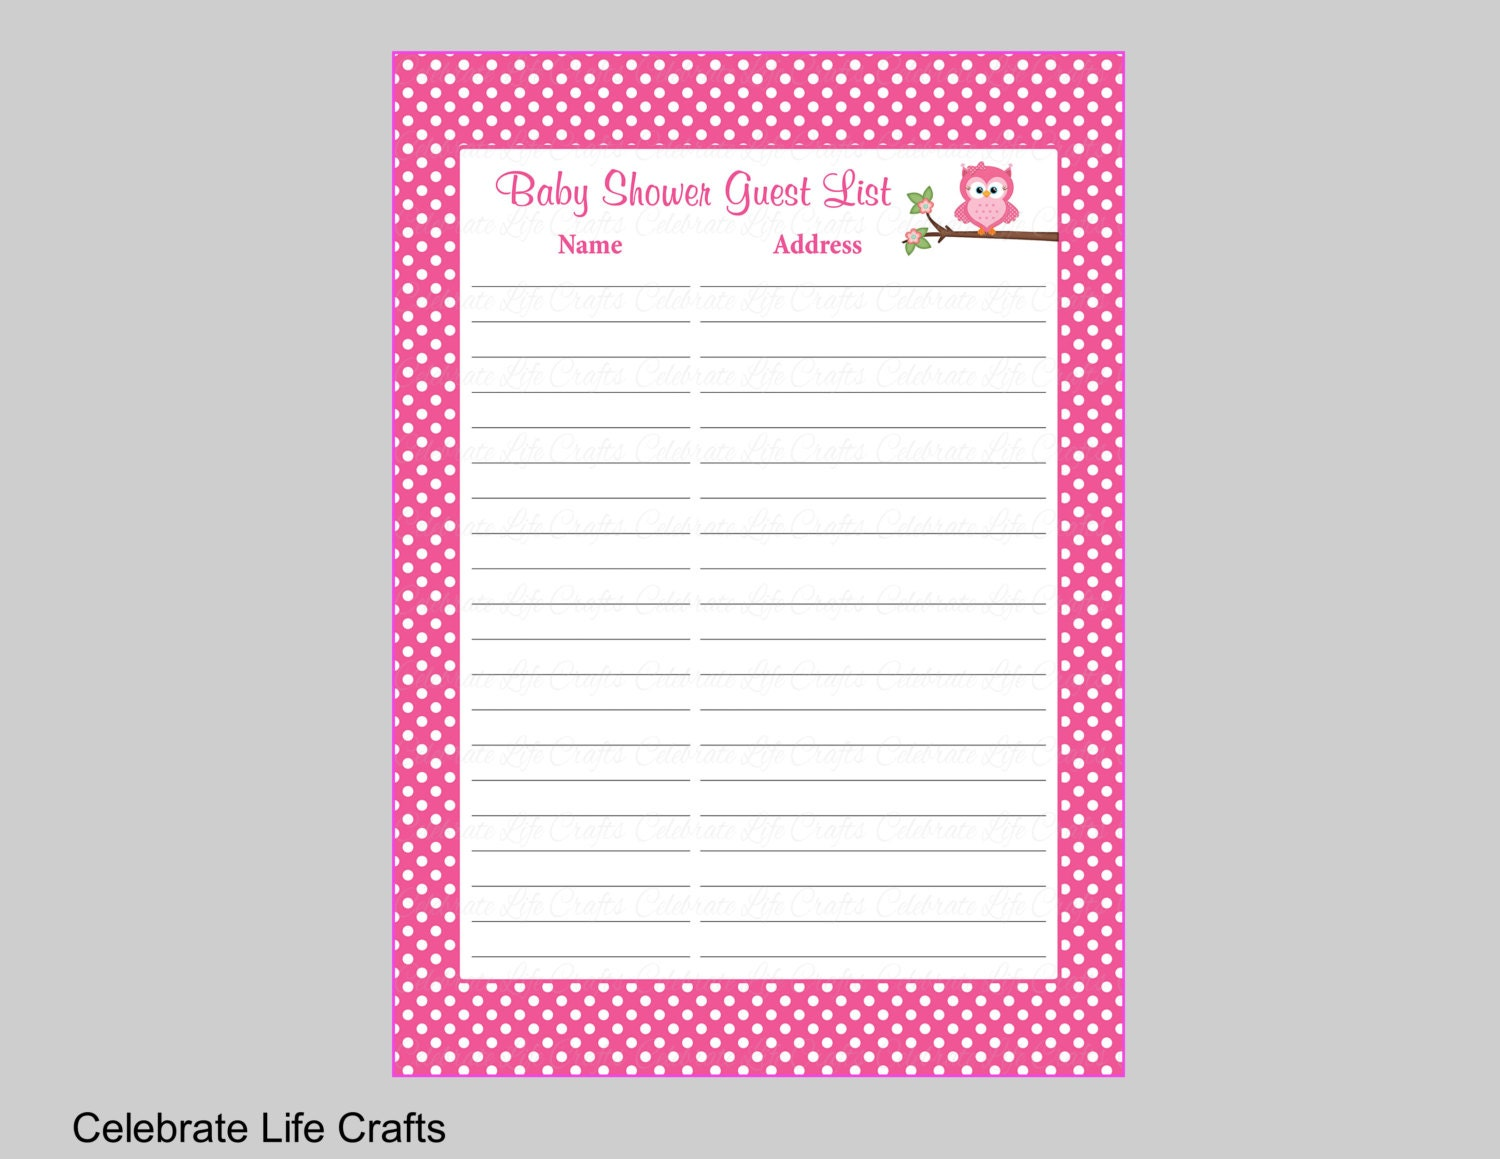 graphic regarding Free Printable Baby Shower Guest Sign in Sheet titled Absolutely free Child Shower Visitor Indicator Inside of Sheet Template - Kid Shower